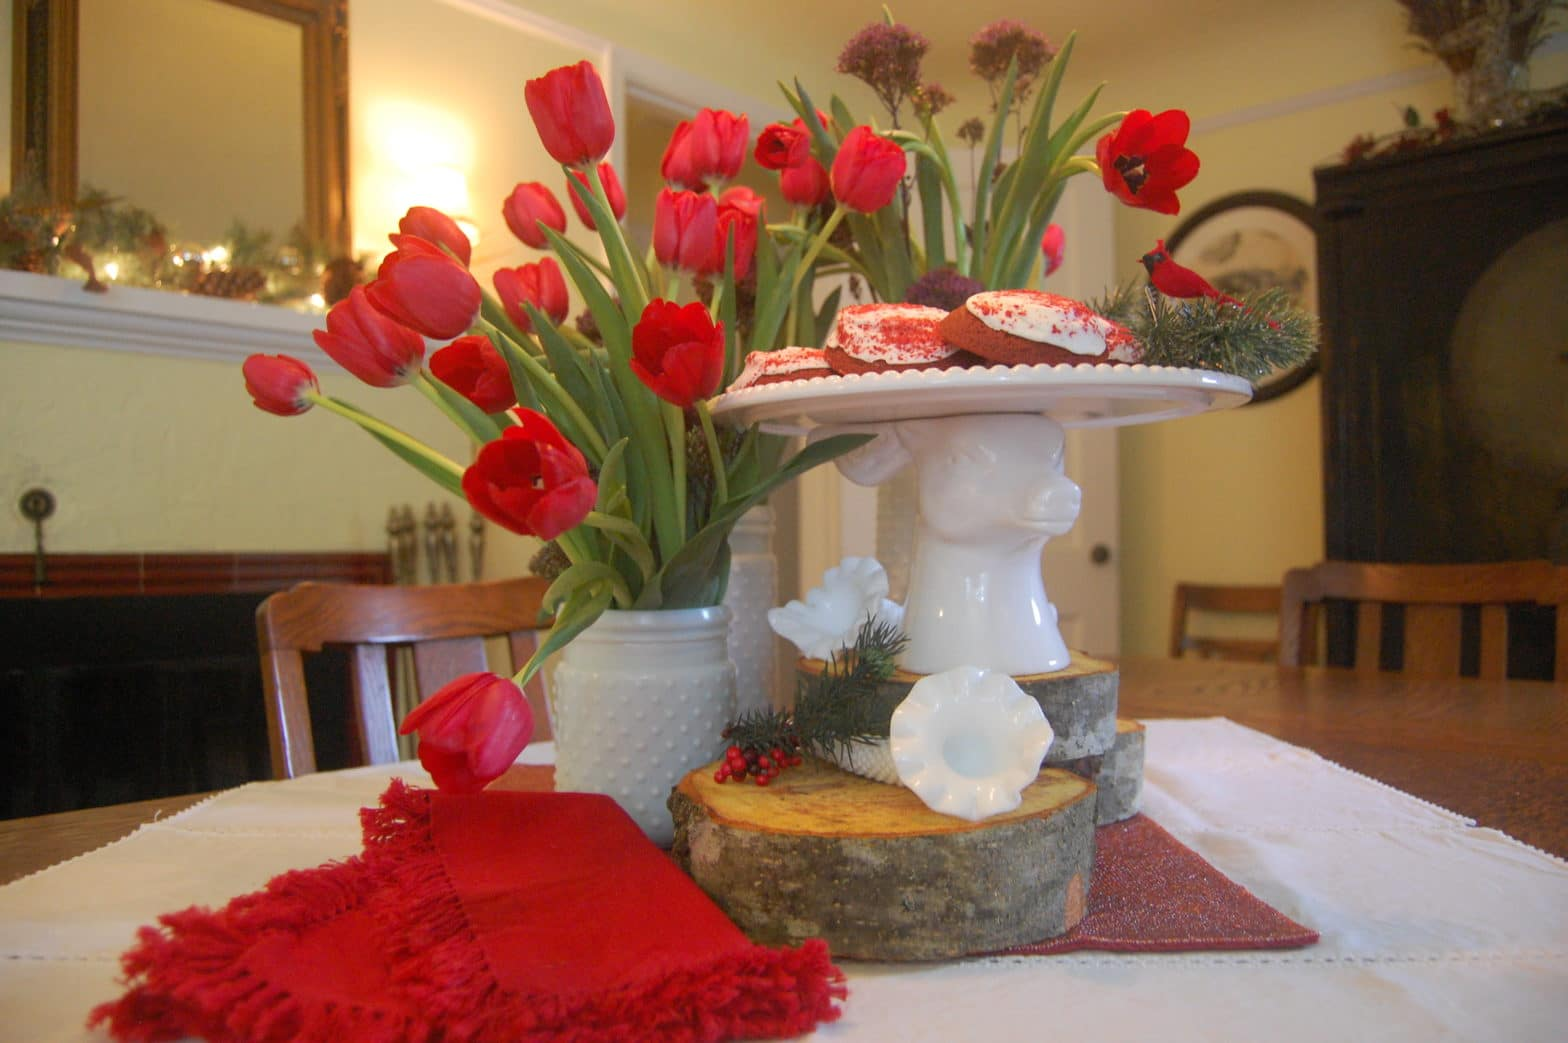 Christmas Cookies on Deer-shaped Glass Platter with Tulips